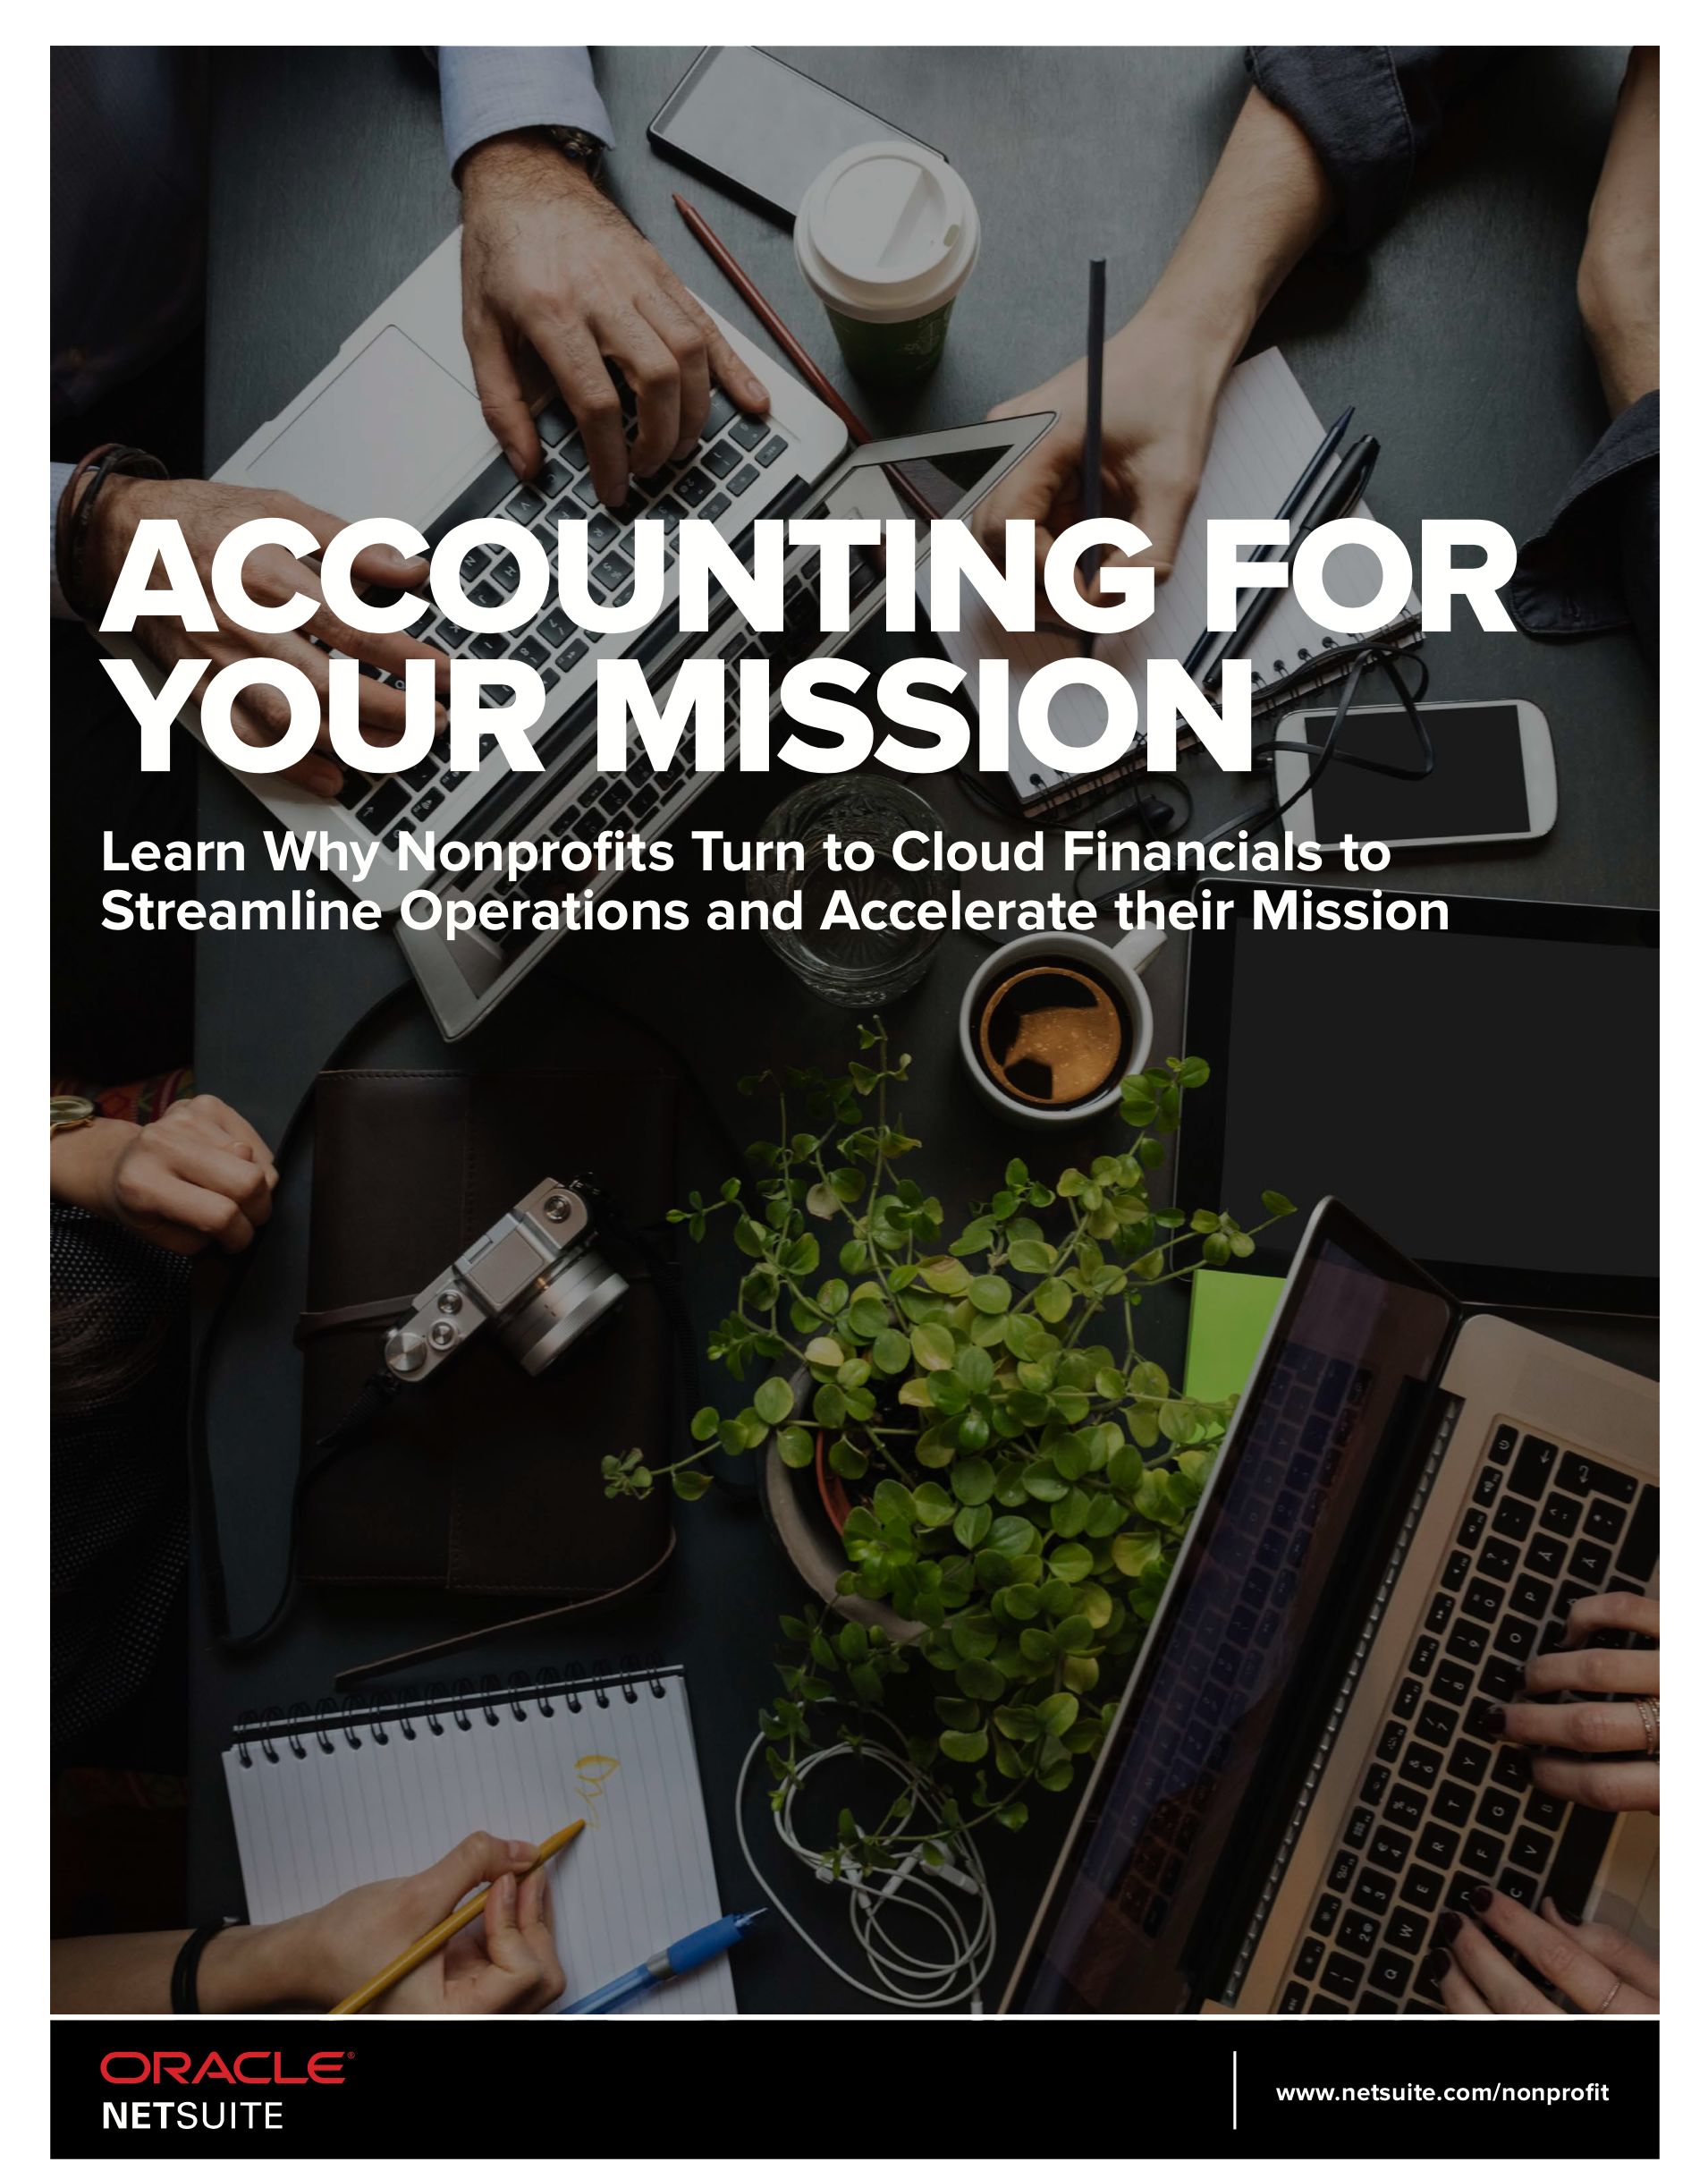 Accounting for Your Non-Profit Mission